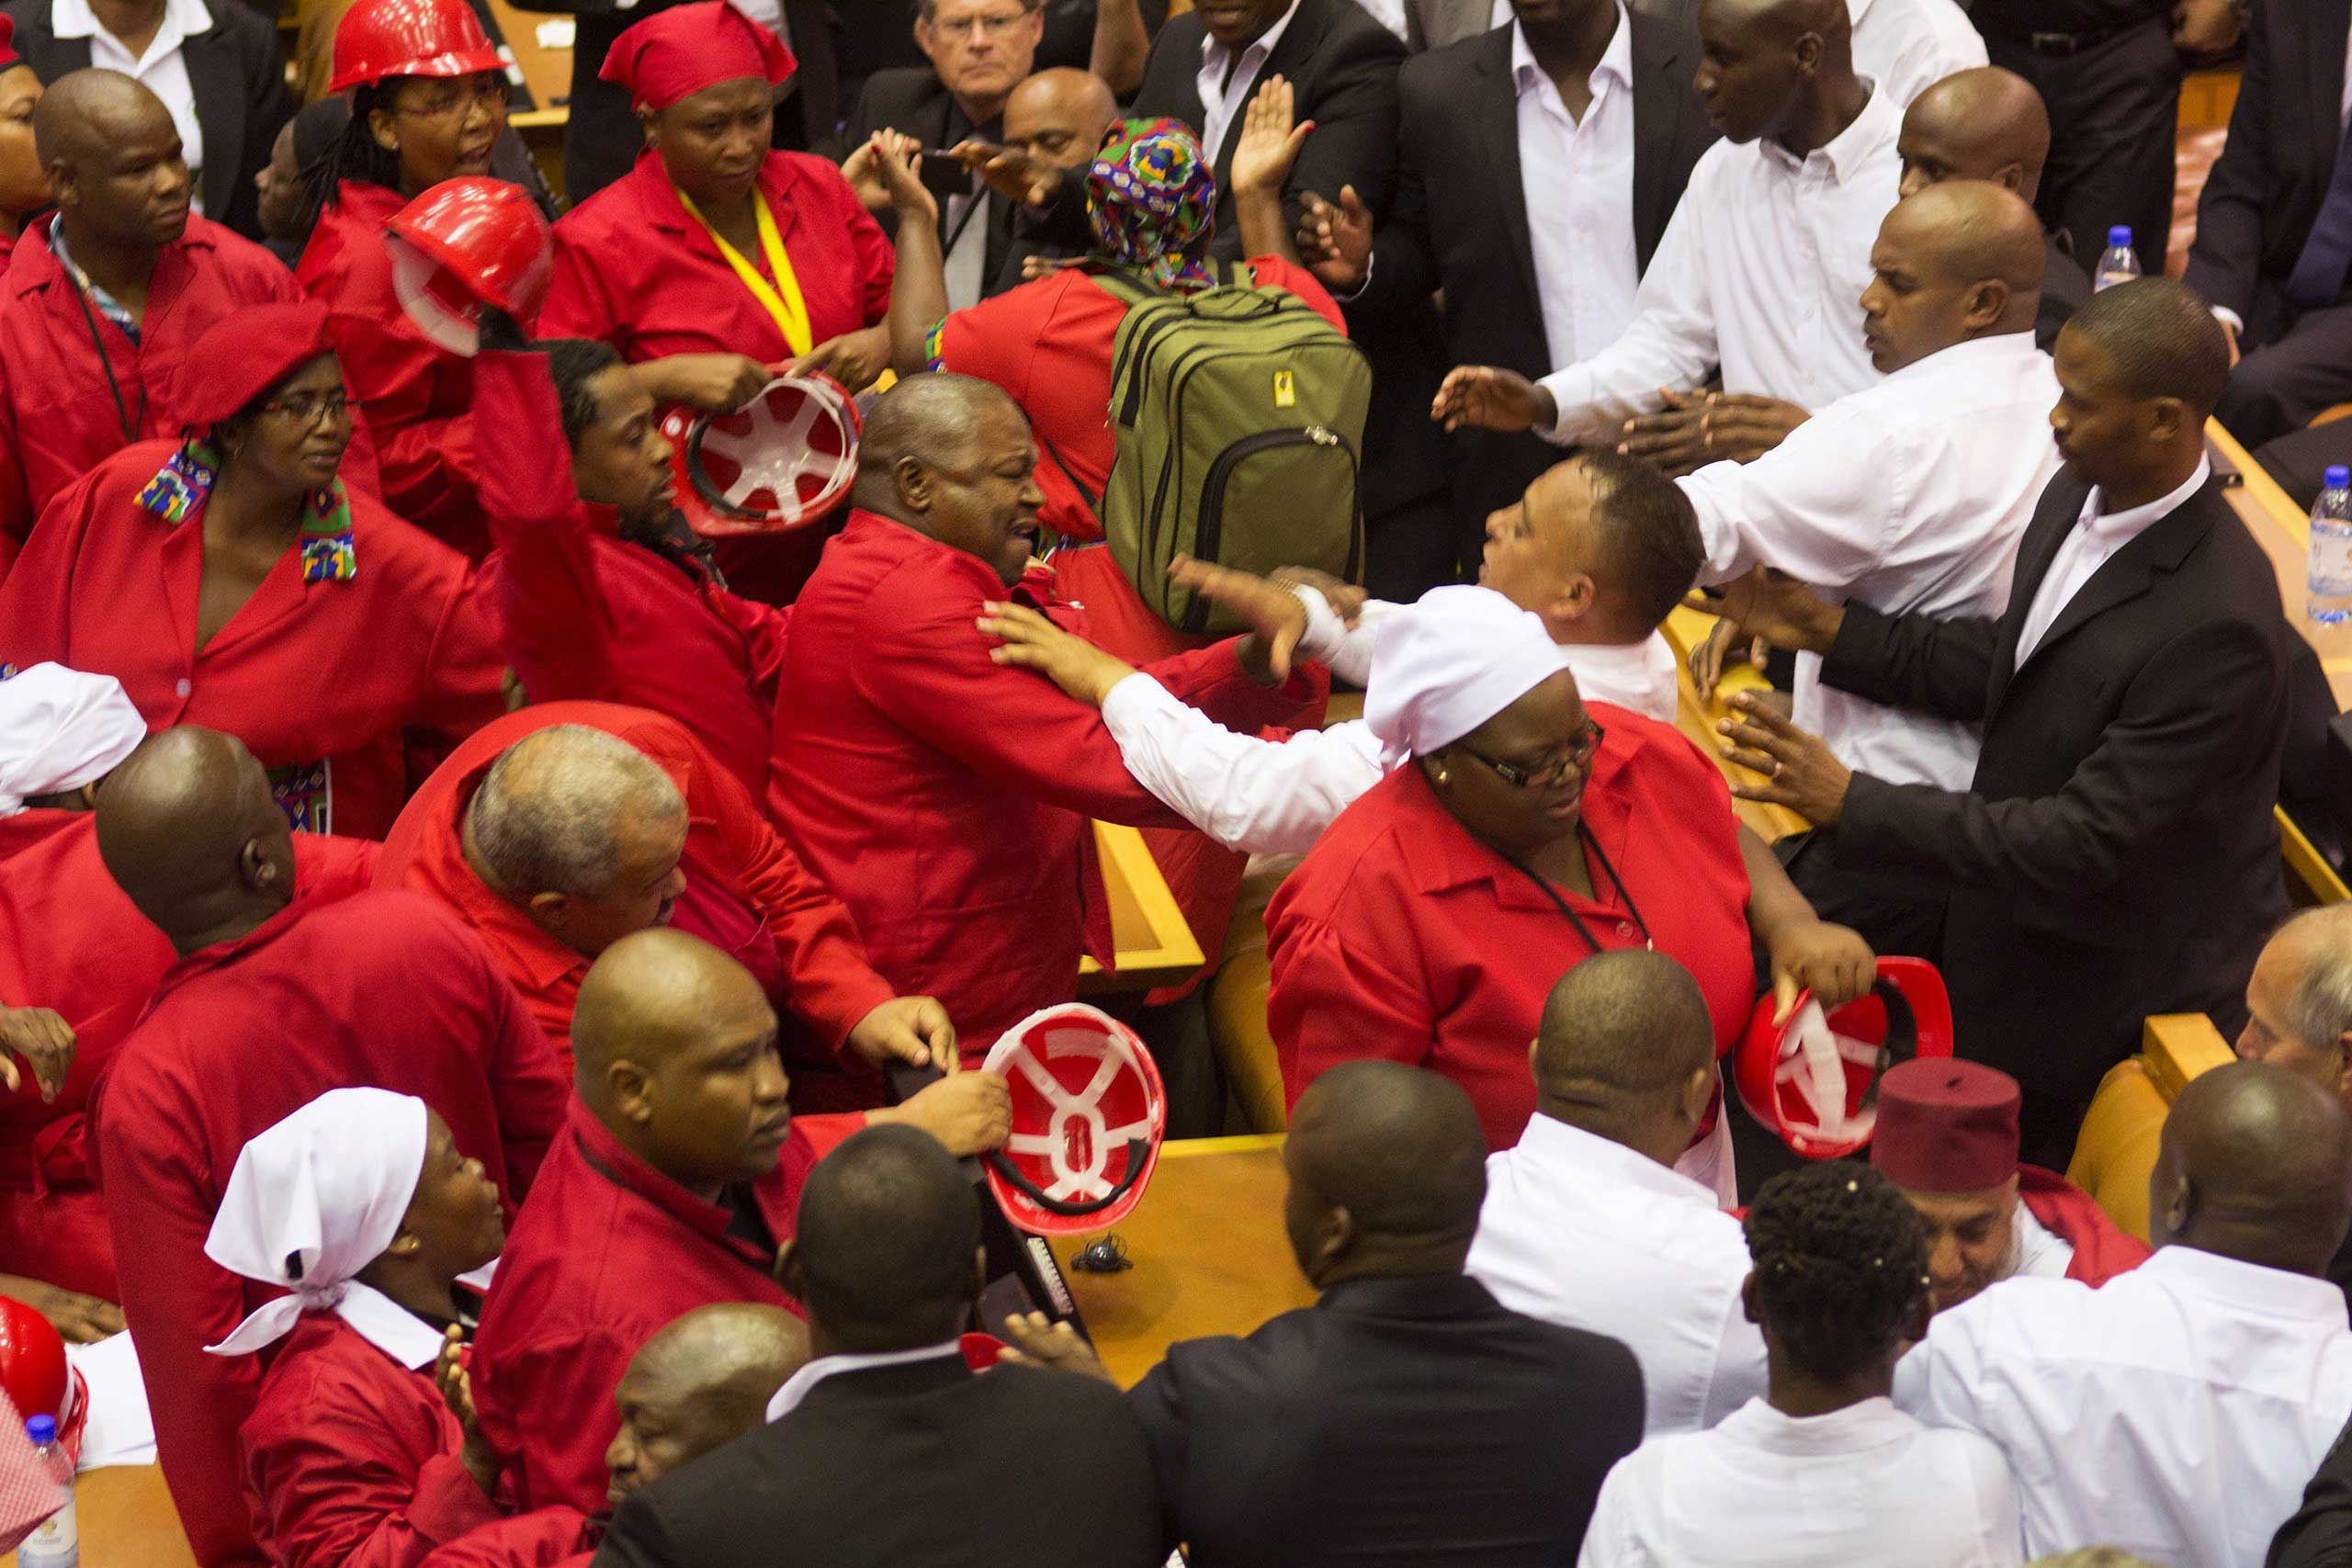 Members of the Economic Freedom Fighters, wearing red uniforms, clash with security forces during South African President's State of the Nation address in Cape Town on Feb. 12, 2015.